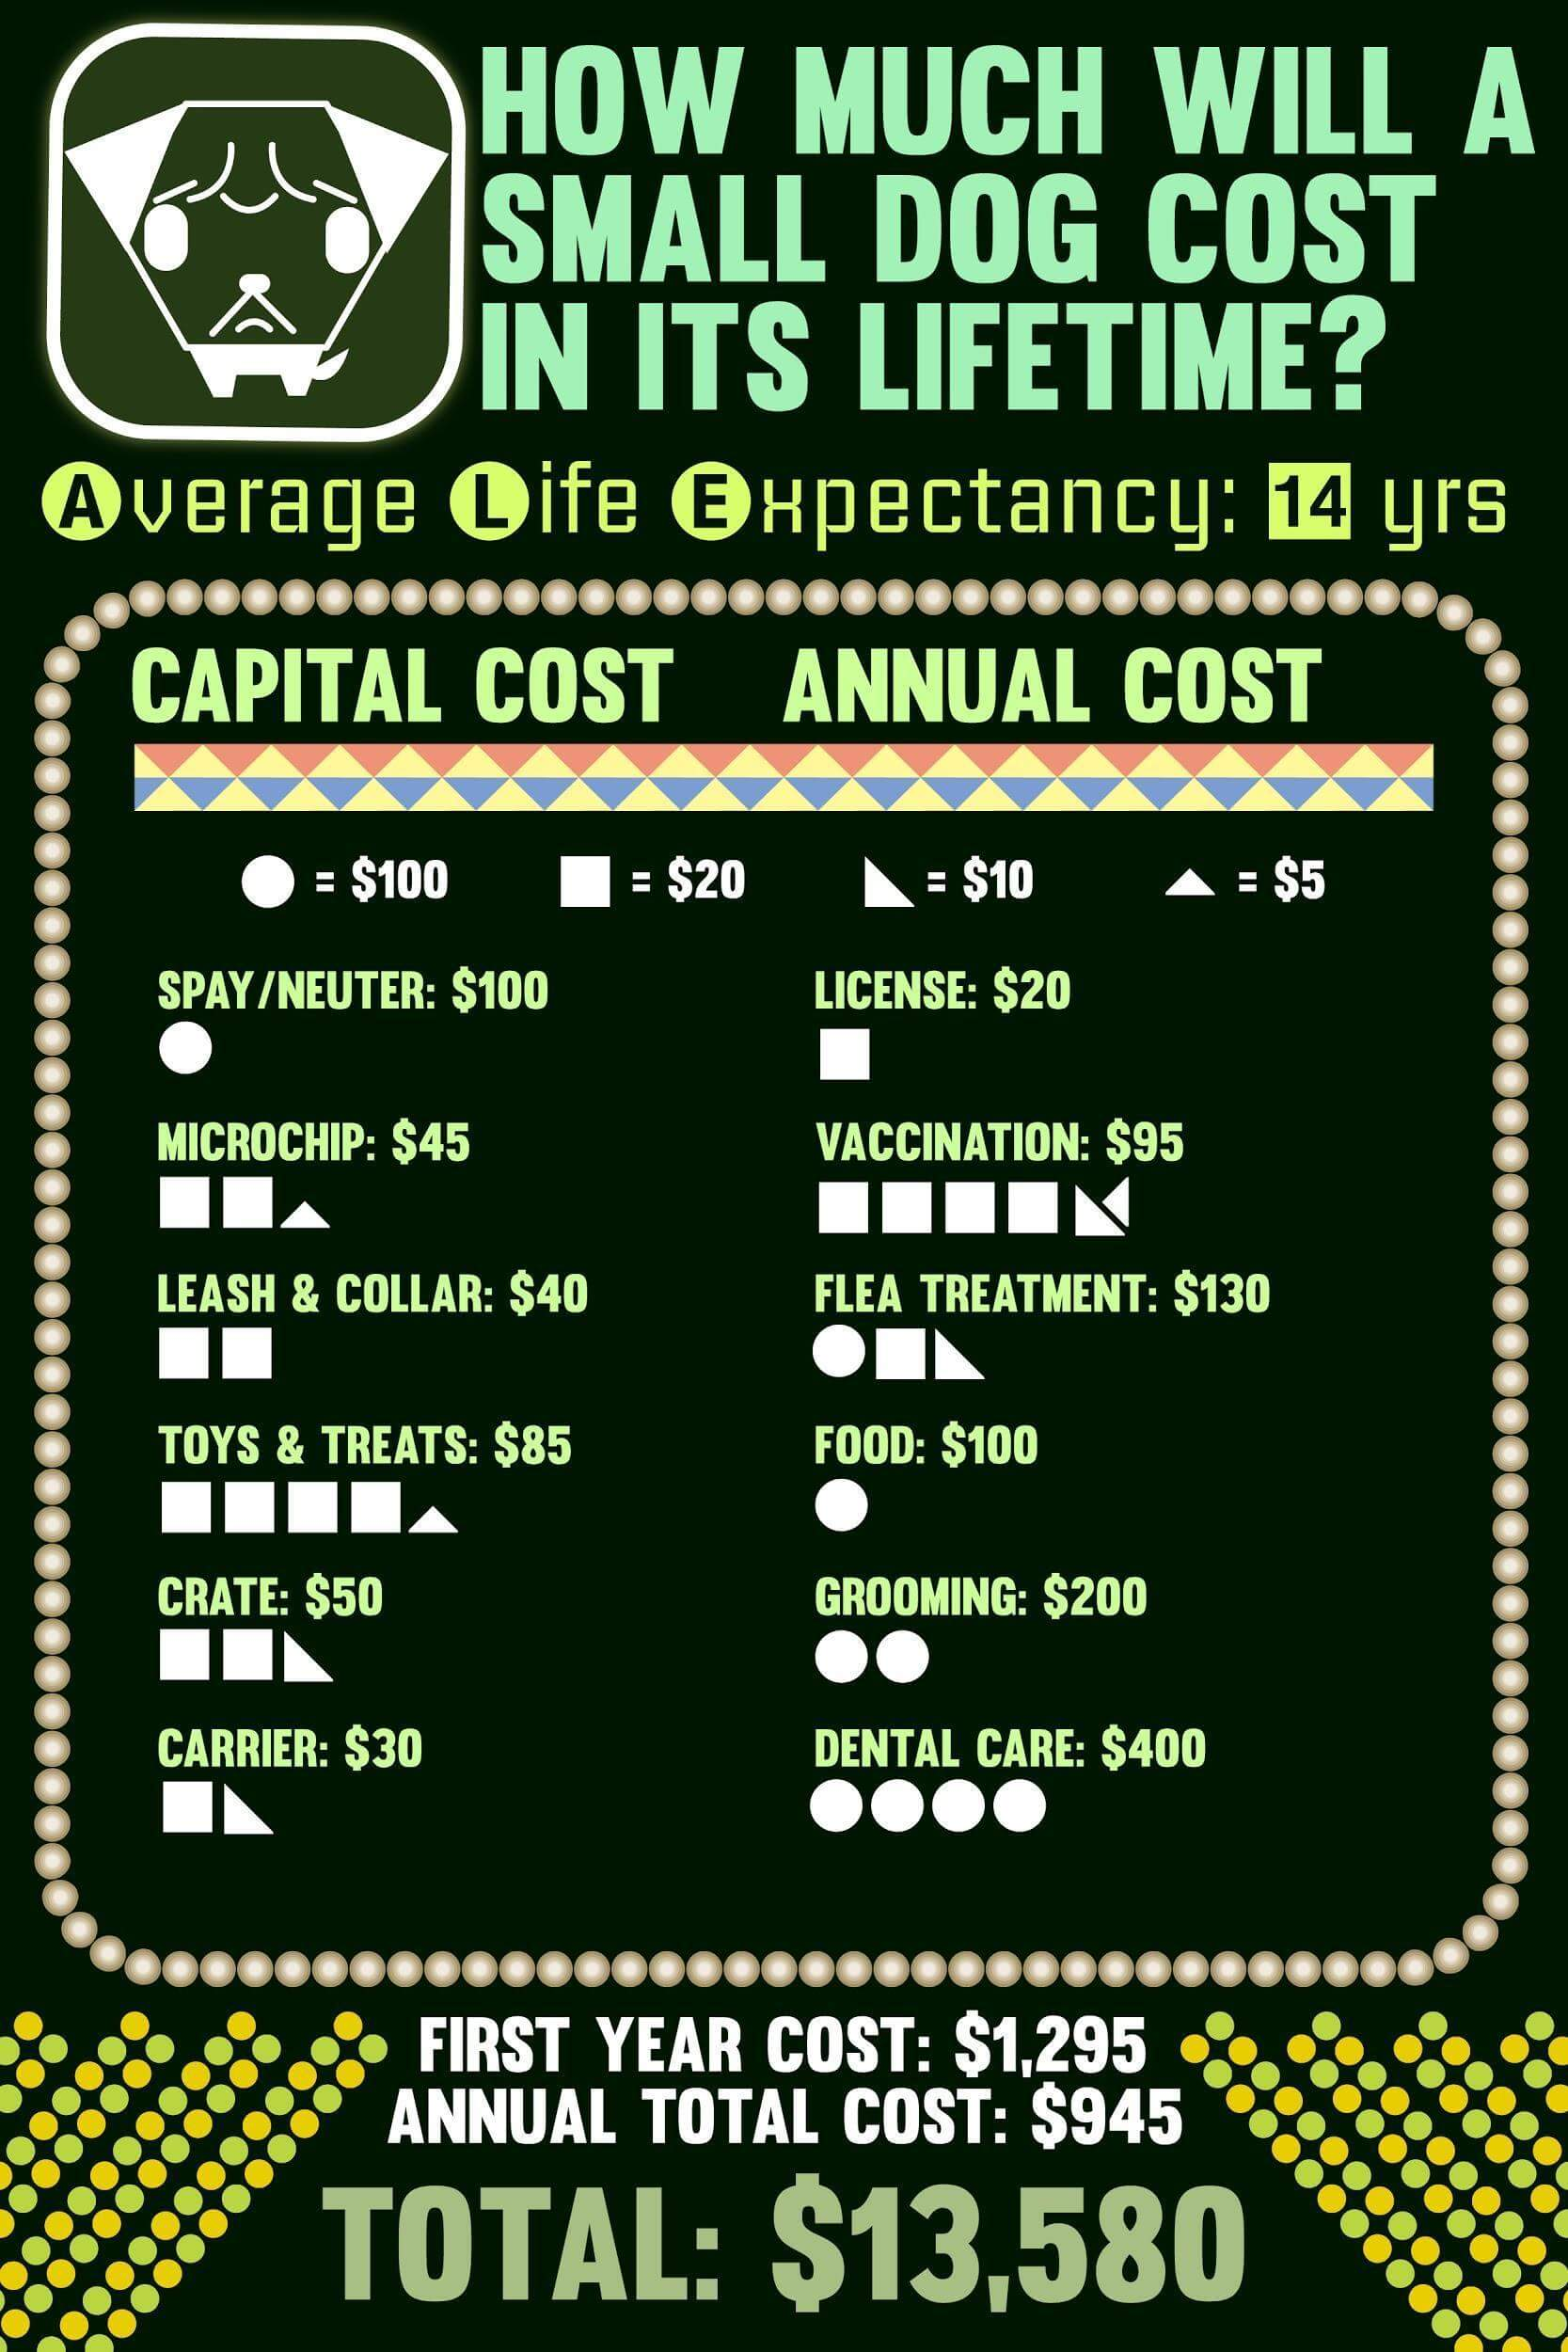 Lifetime cost of small dogs